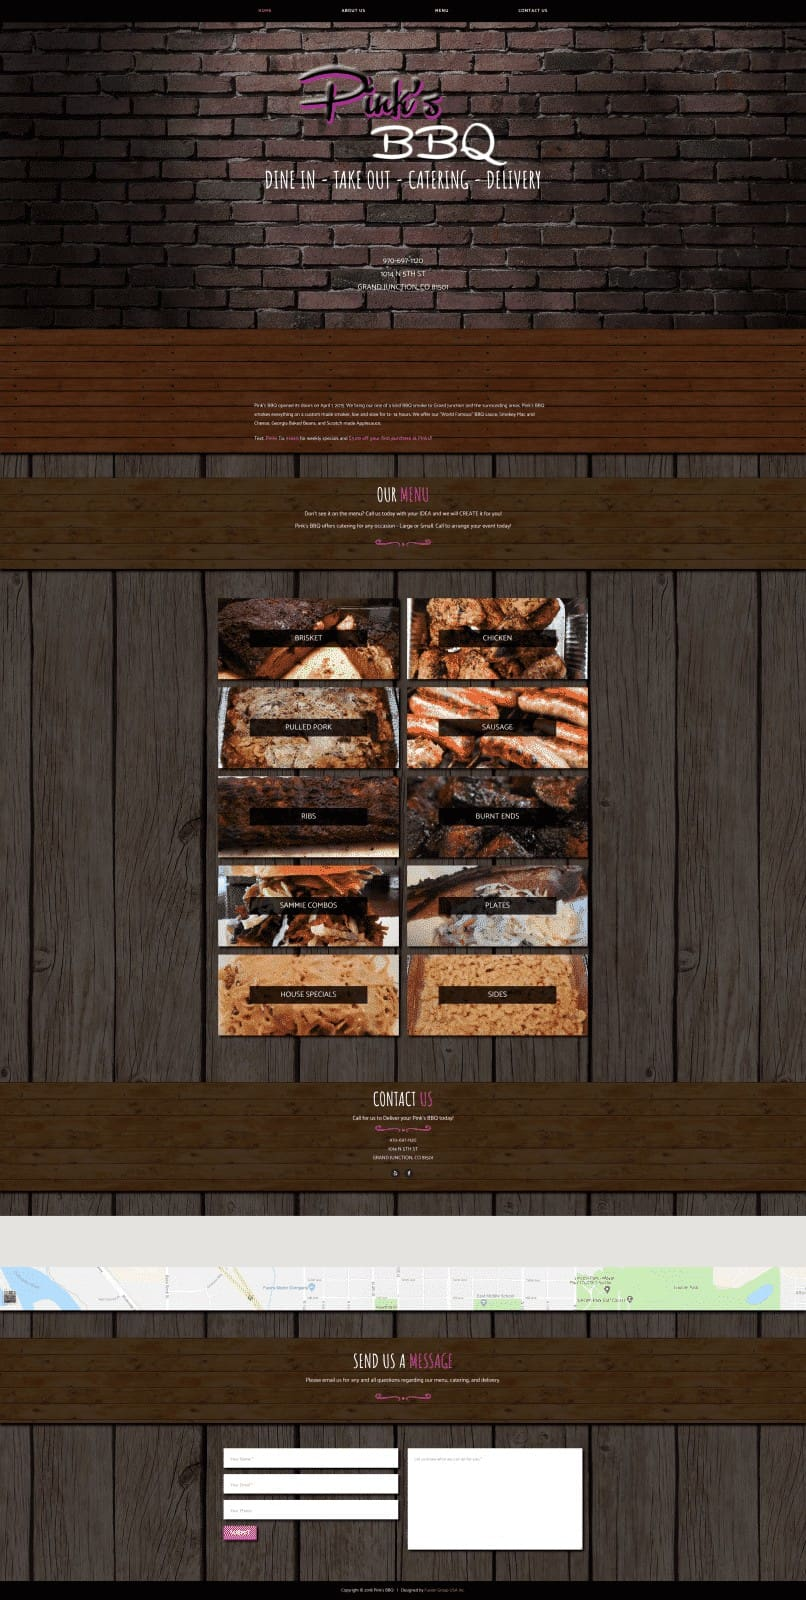 BBQ Restaurant Website Design